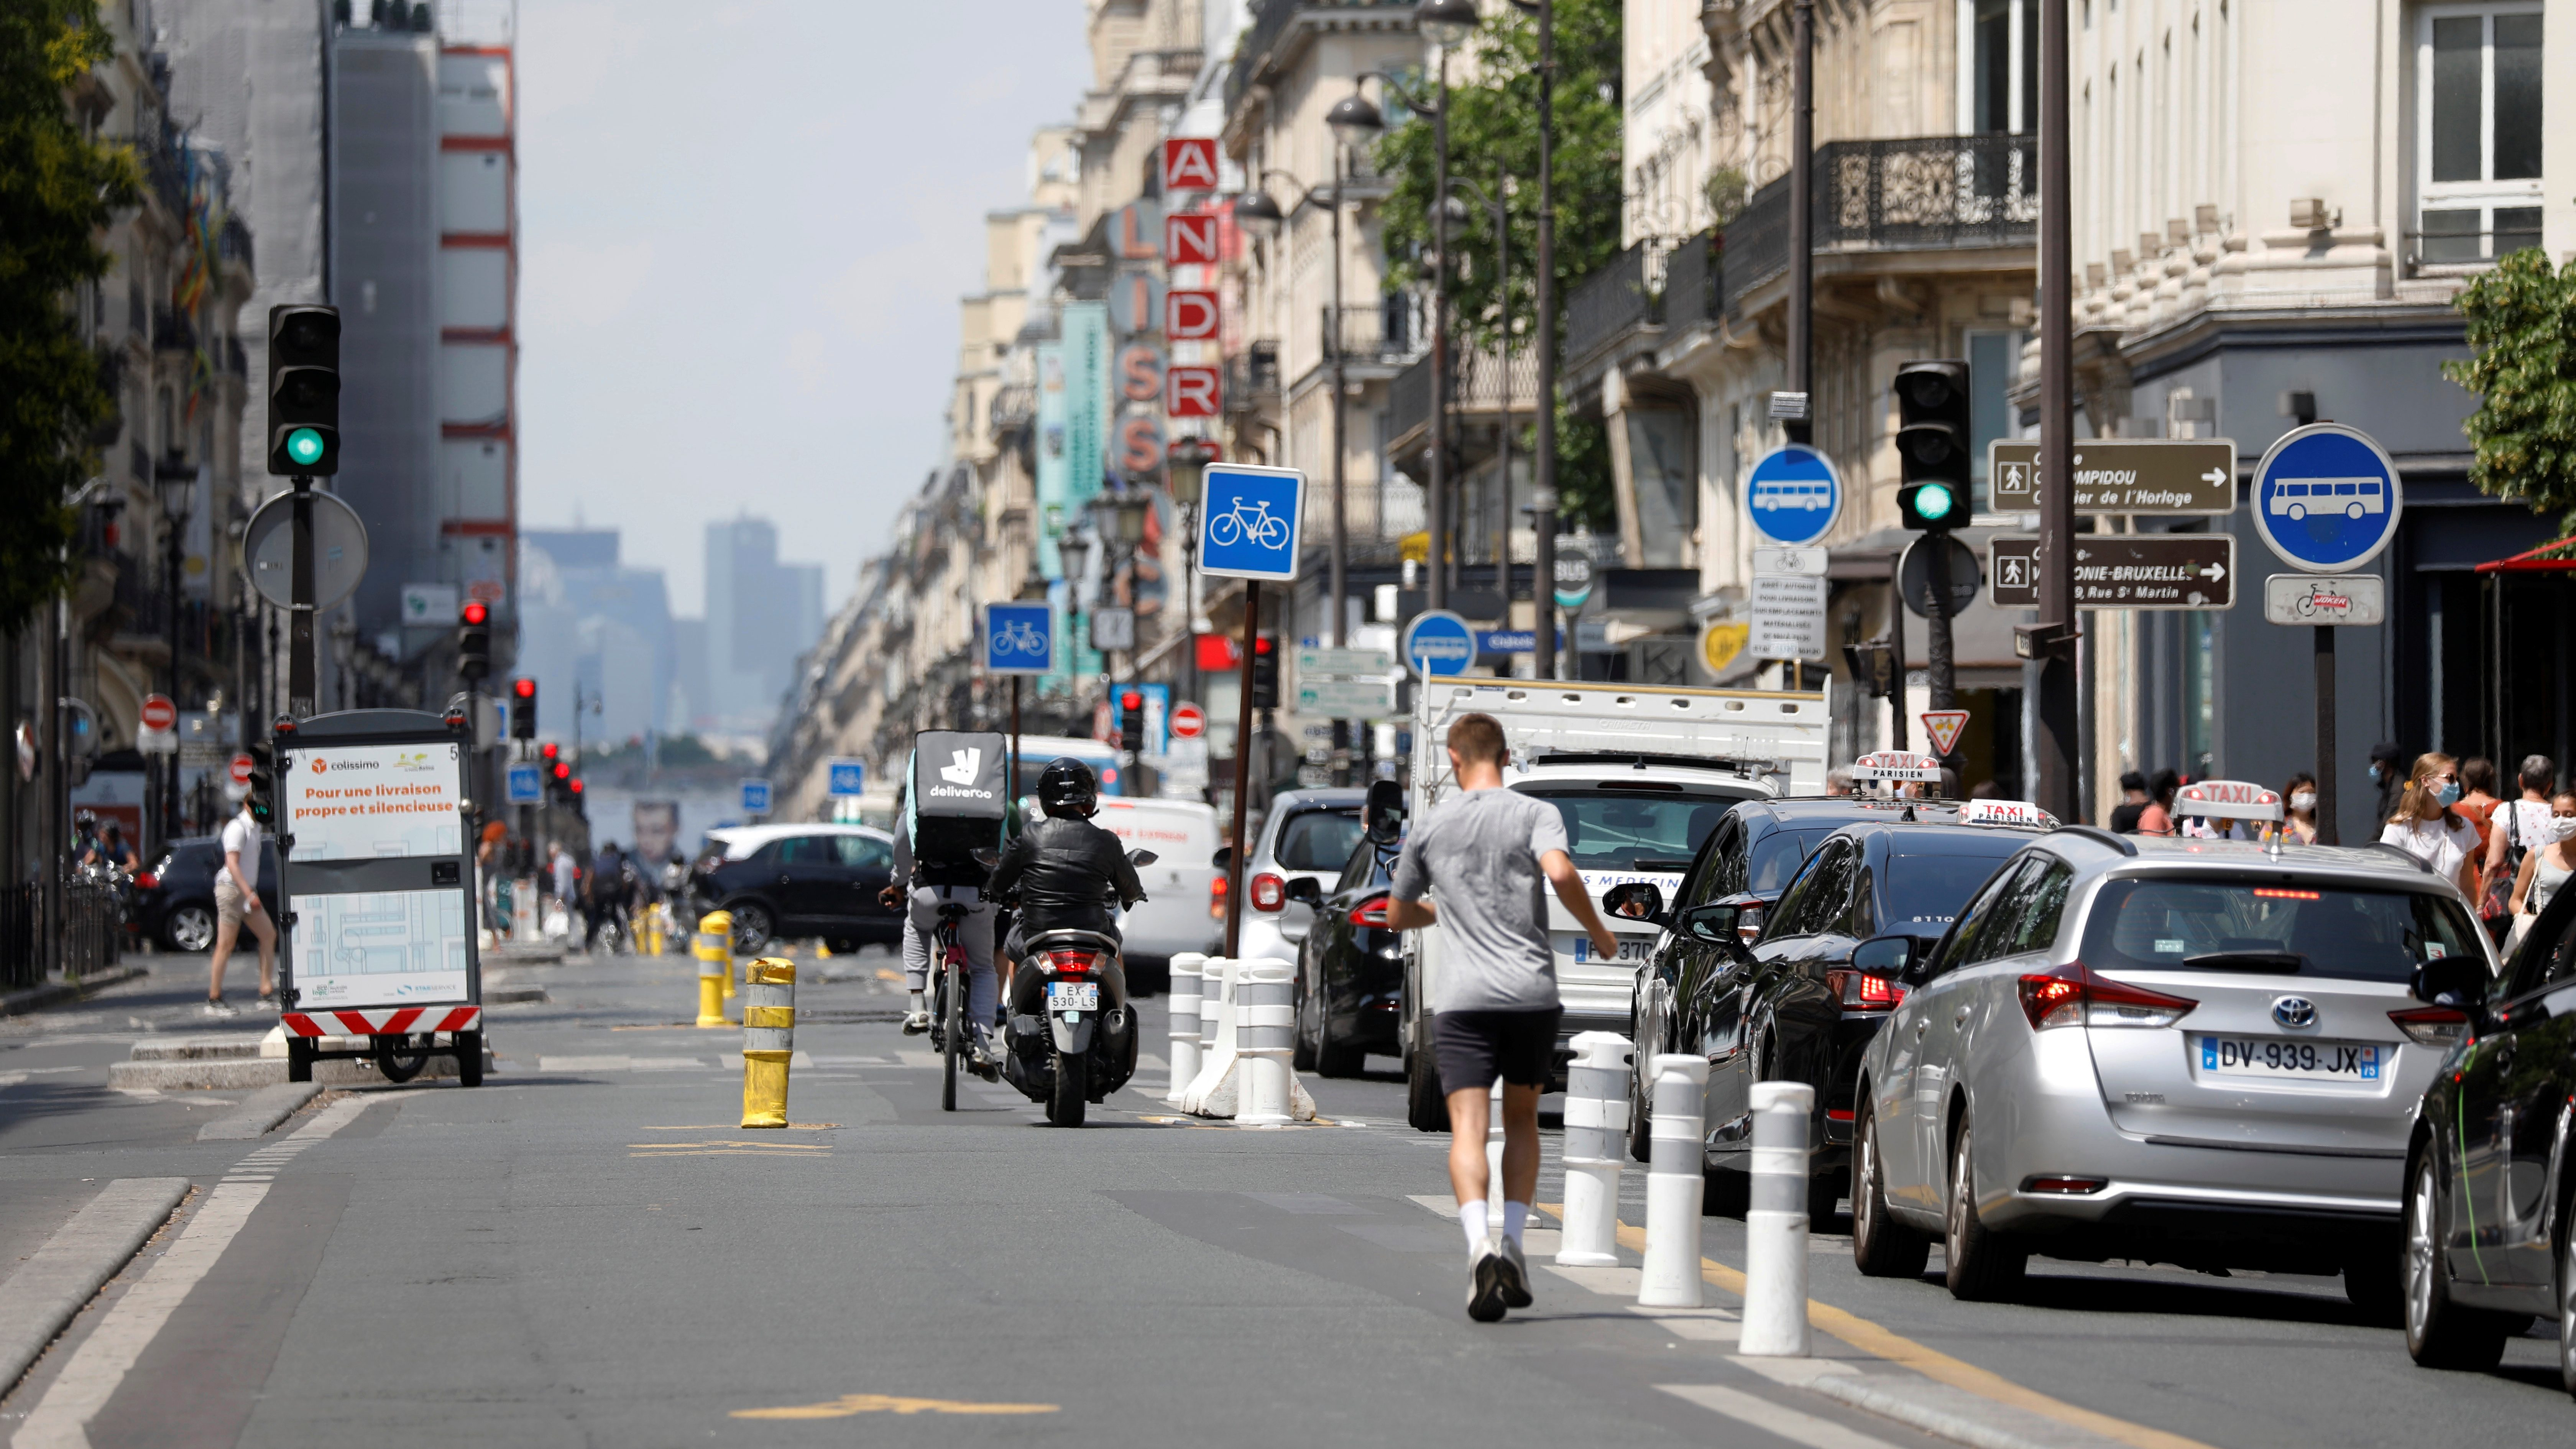 a jogger runs along a portion of a city street protected with barriers, while a line of vehicles moves on his right.